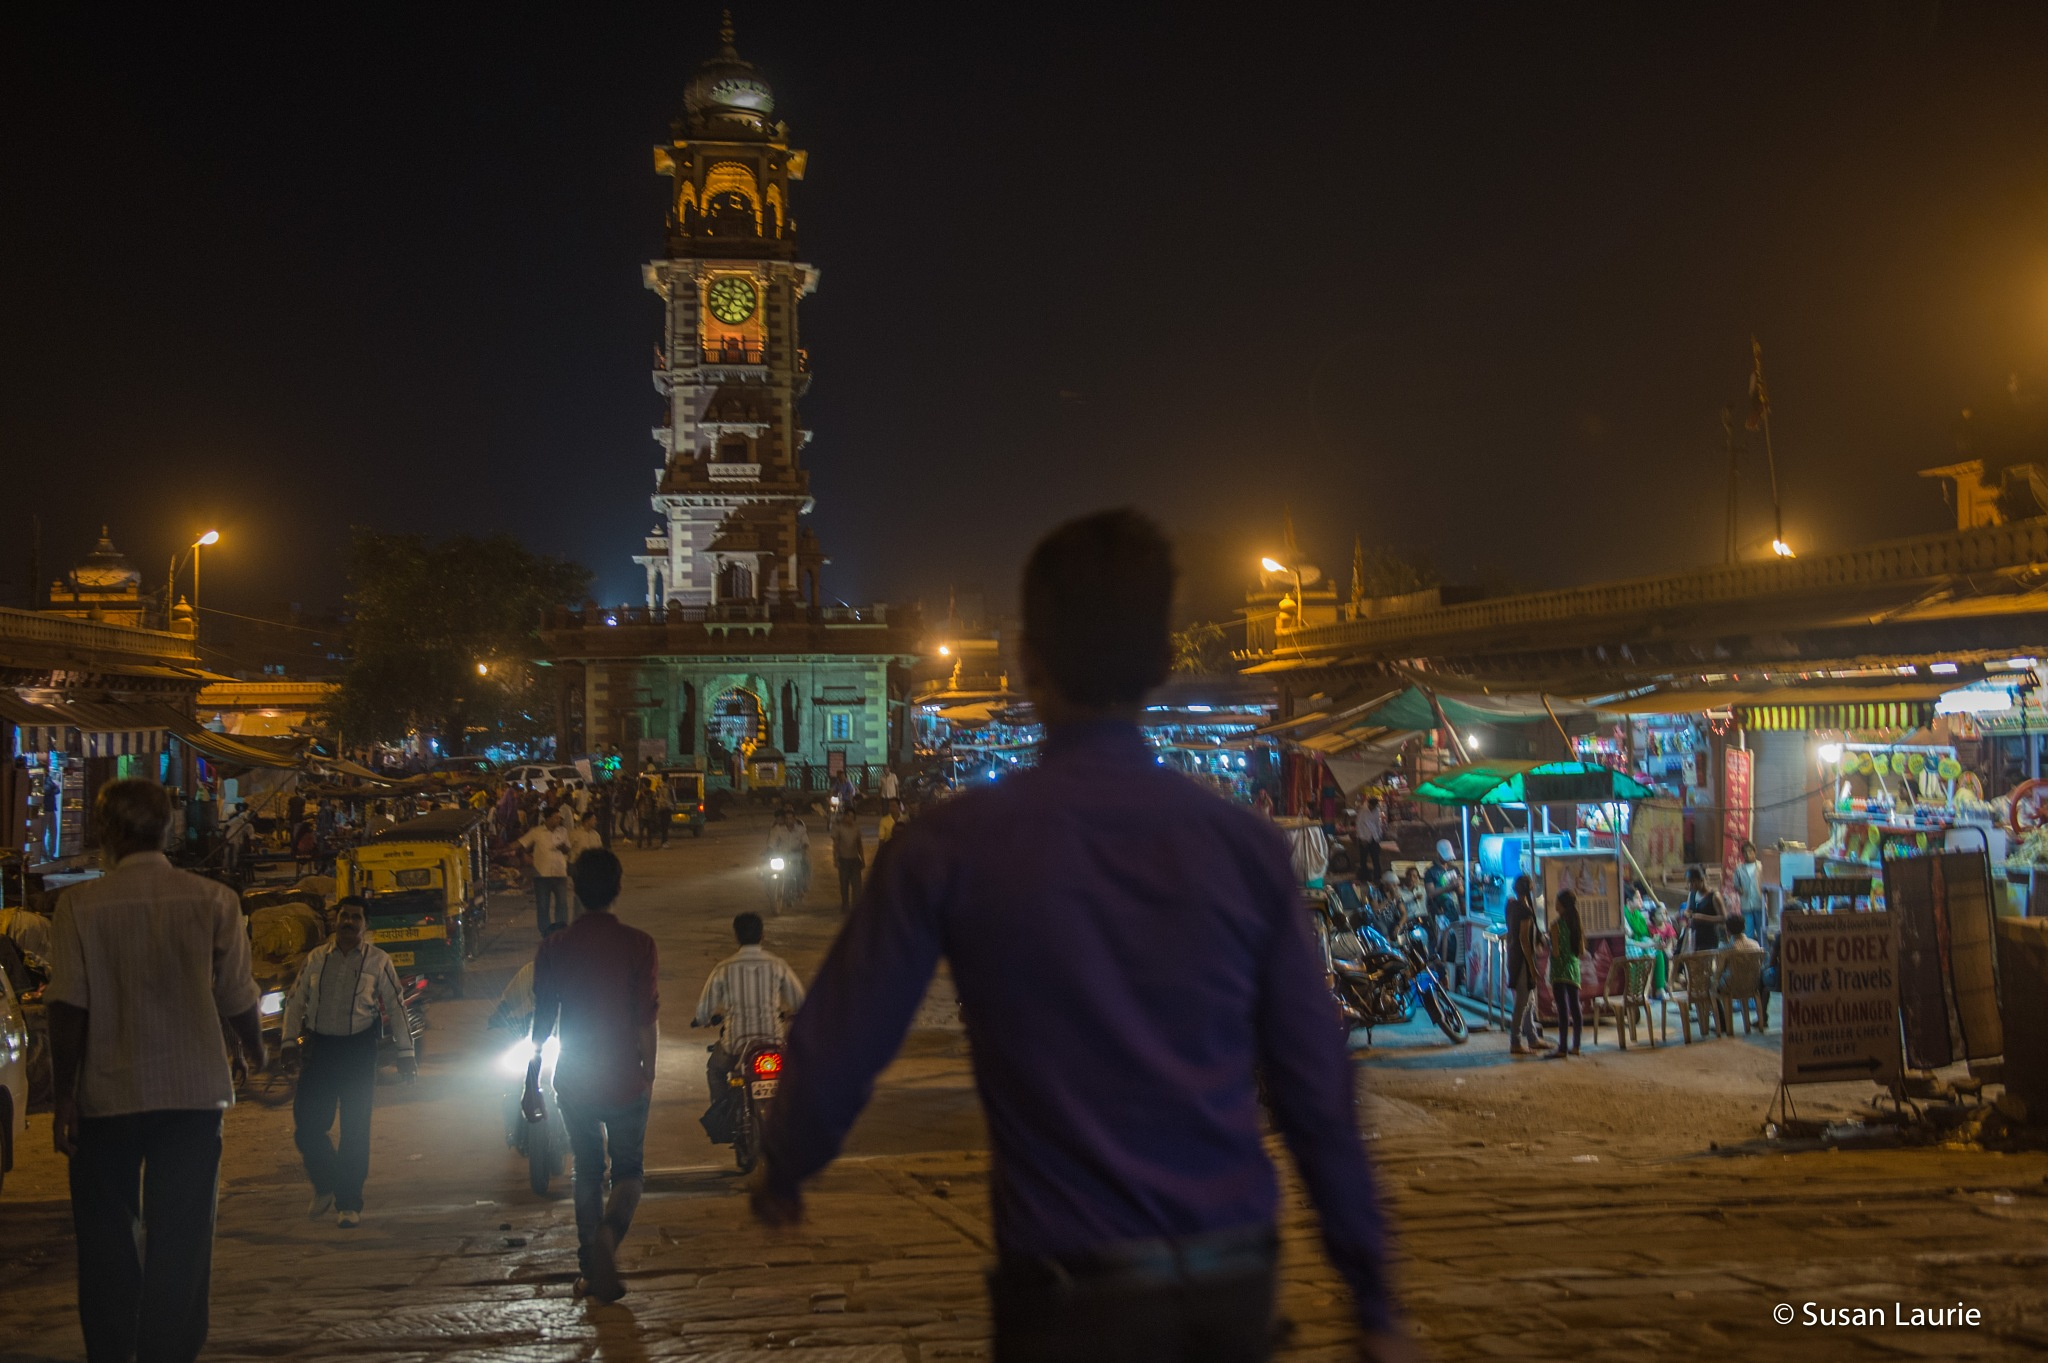 Judhpur Nights by Susan Laurie